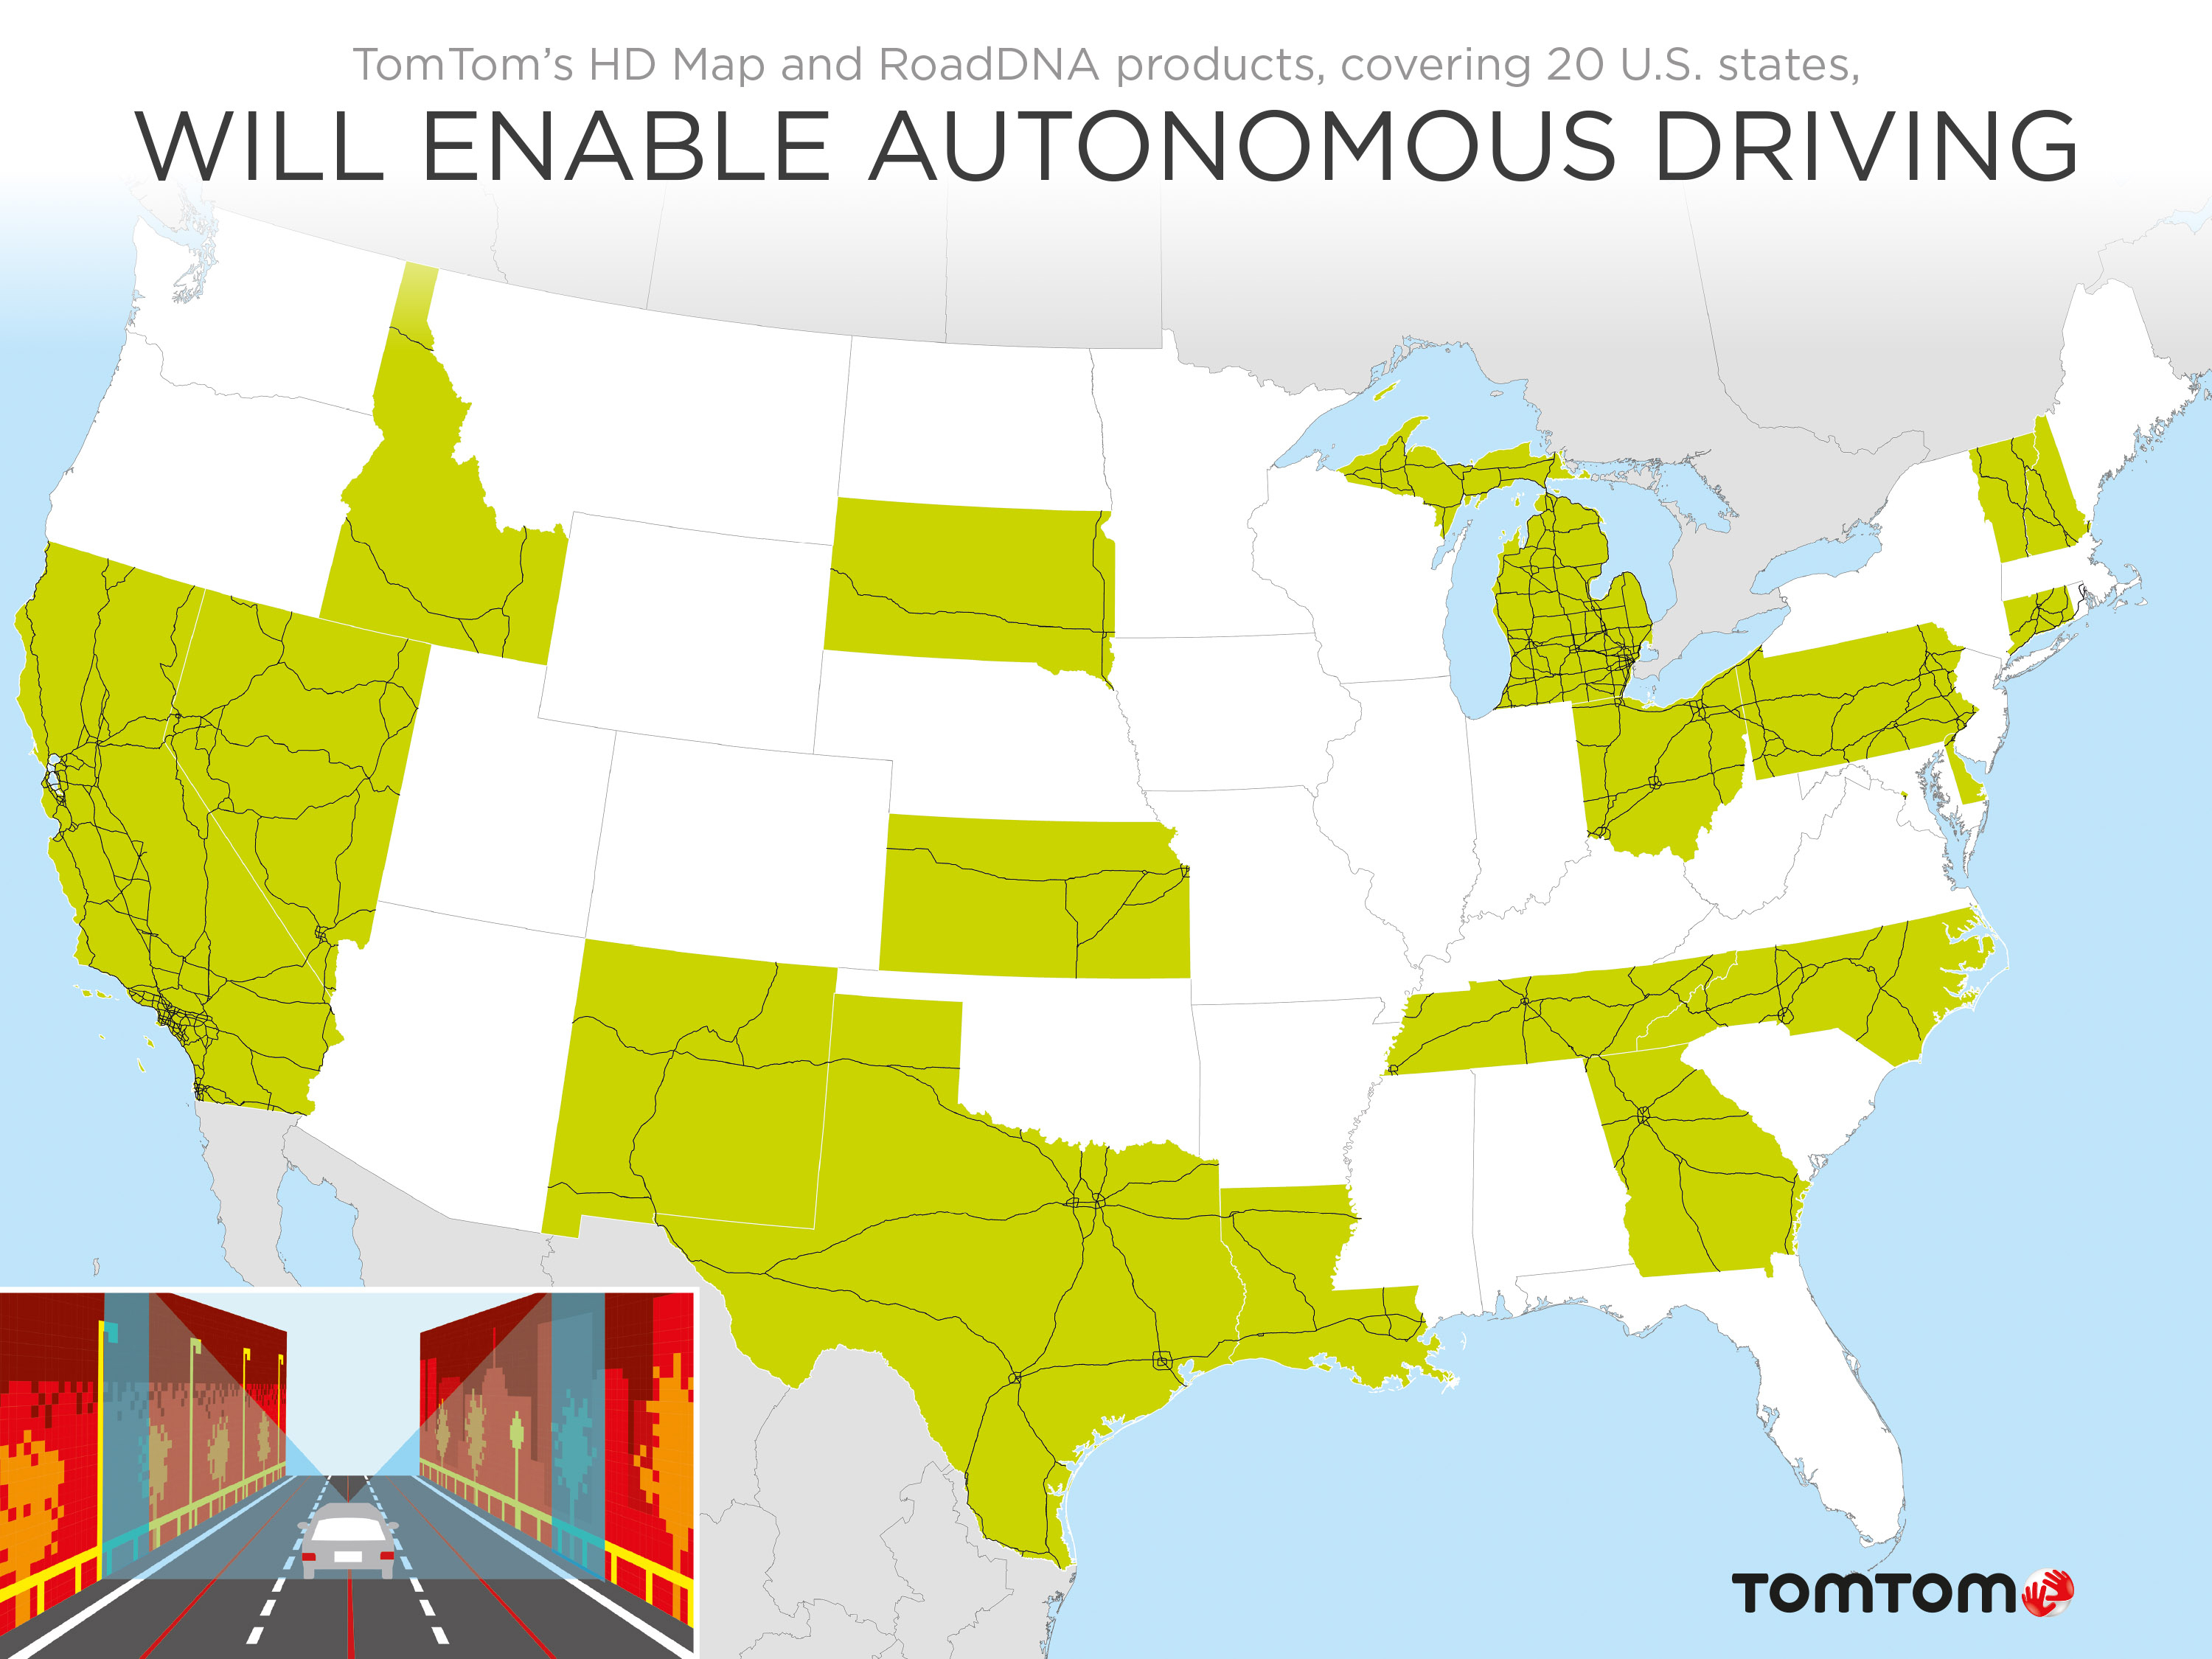 TomTom Launches HD Map  RoadDNA For  New States Business Wire - Tom tom us maps